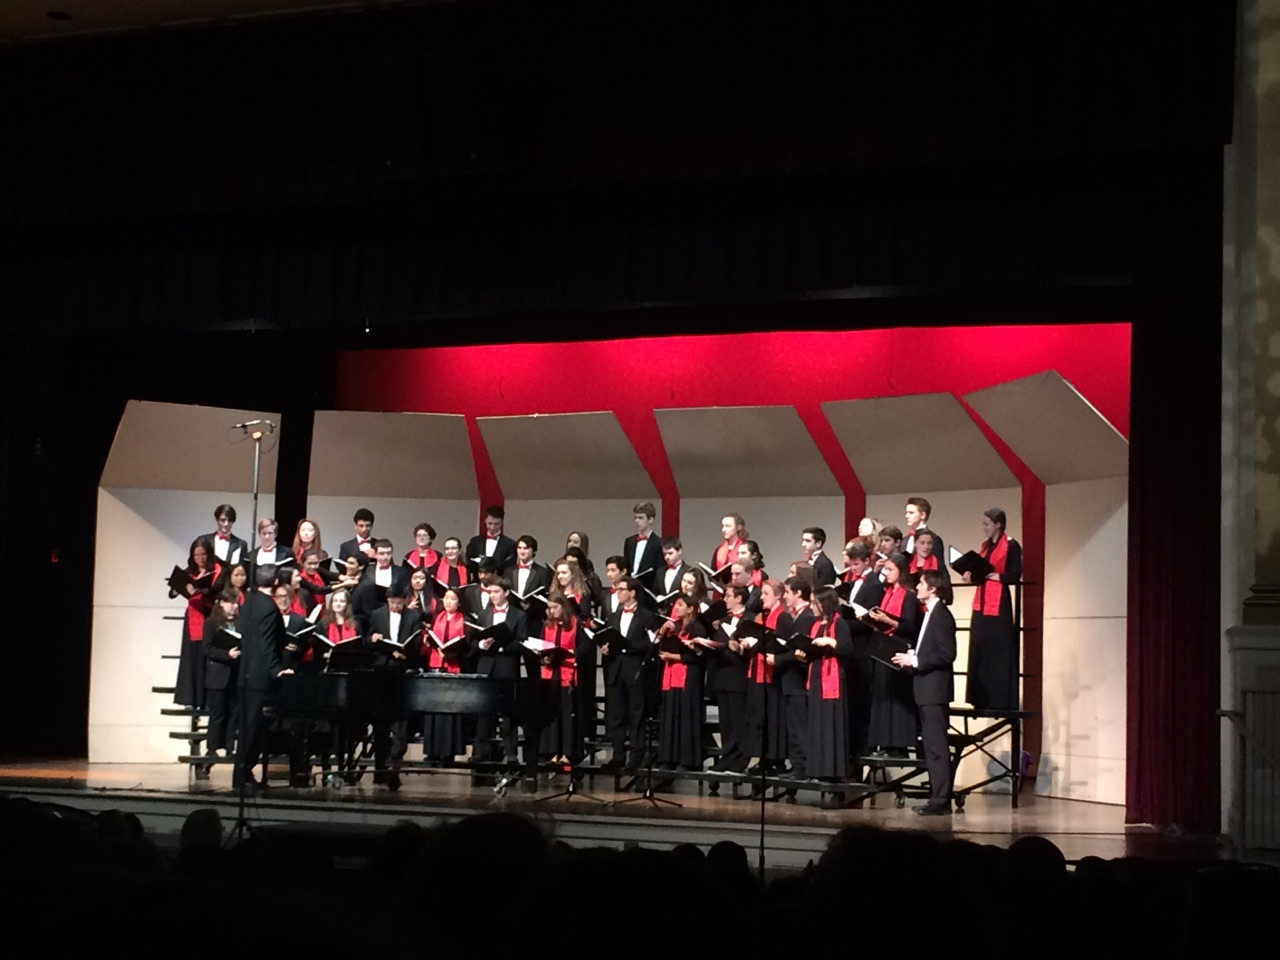 The high school's Camerata choir delighted the audience with their jovial songs. Camerata is just one of the talented musical groups that performed at the Winter Concert. CONTRIBUTED BY ESTHER PRONOVOST